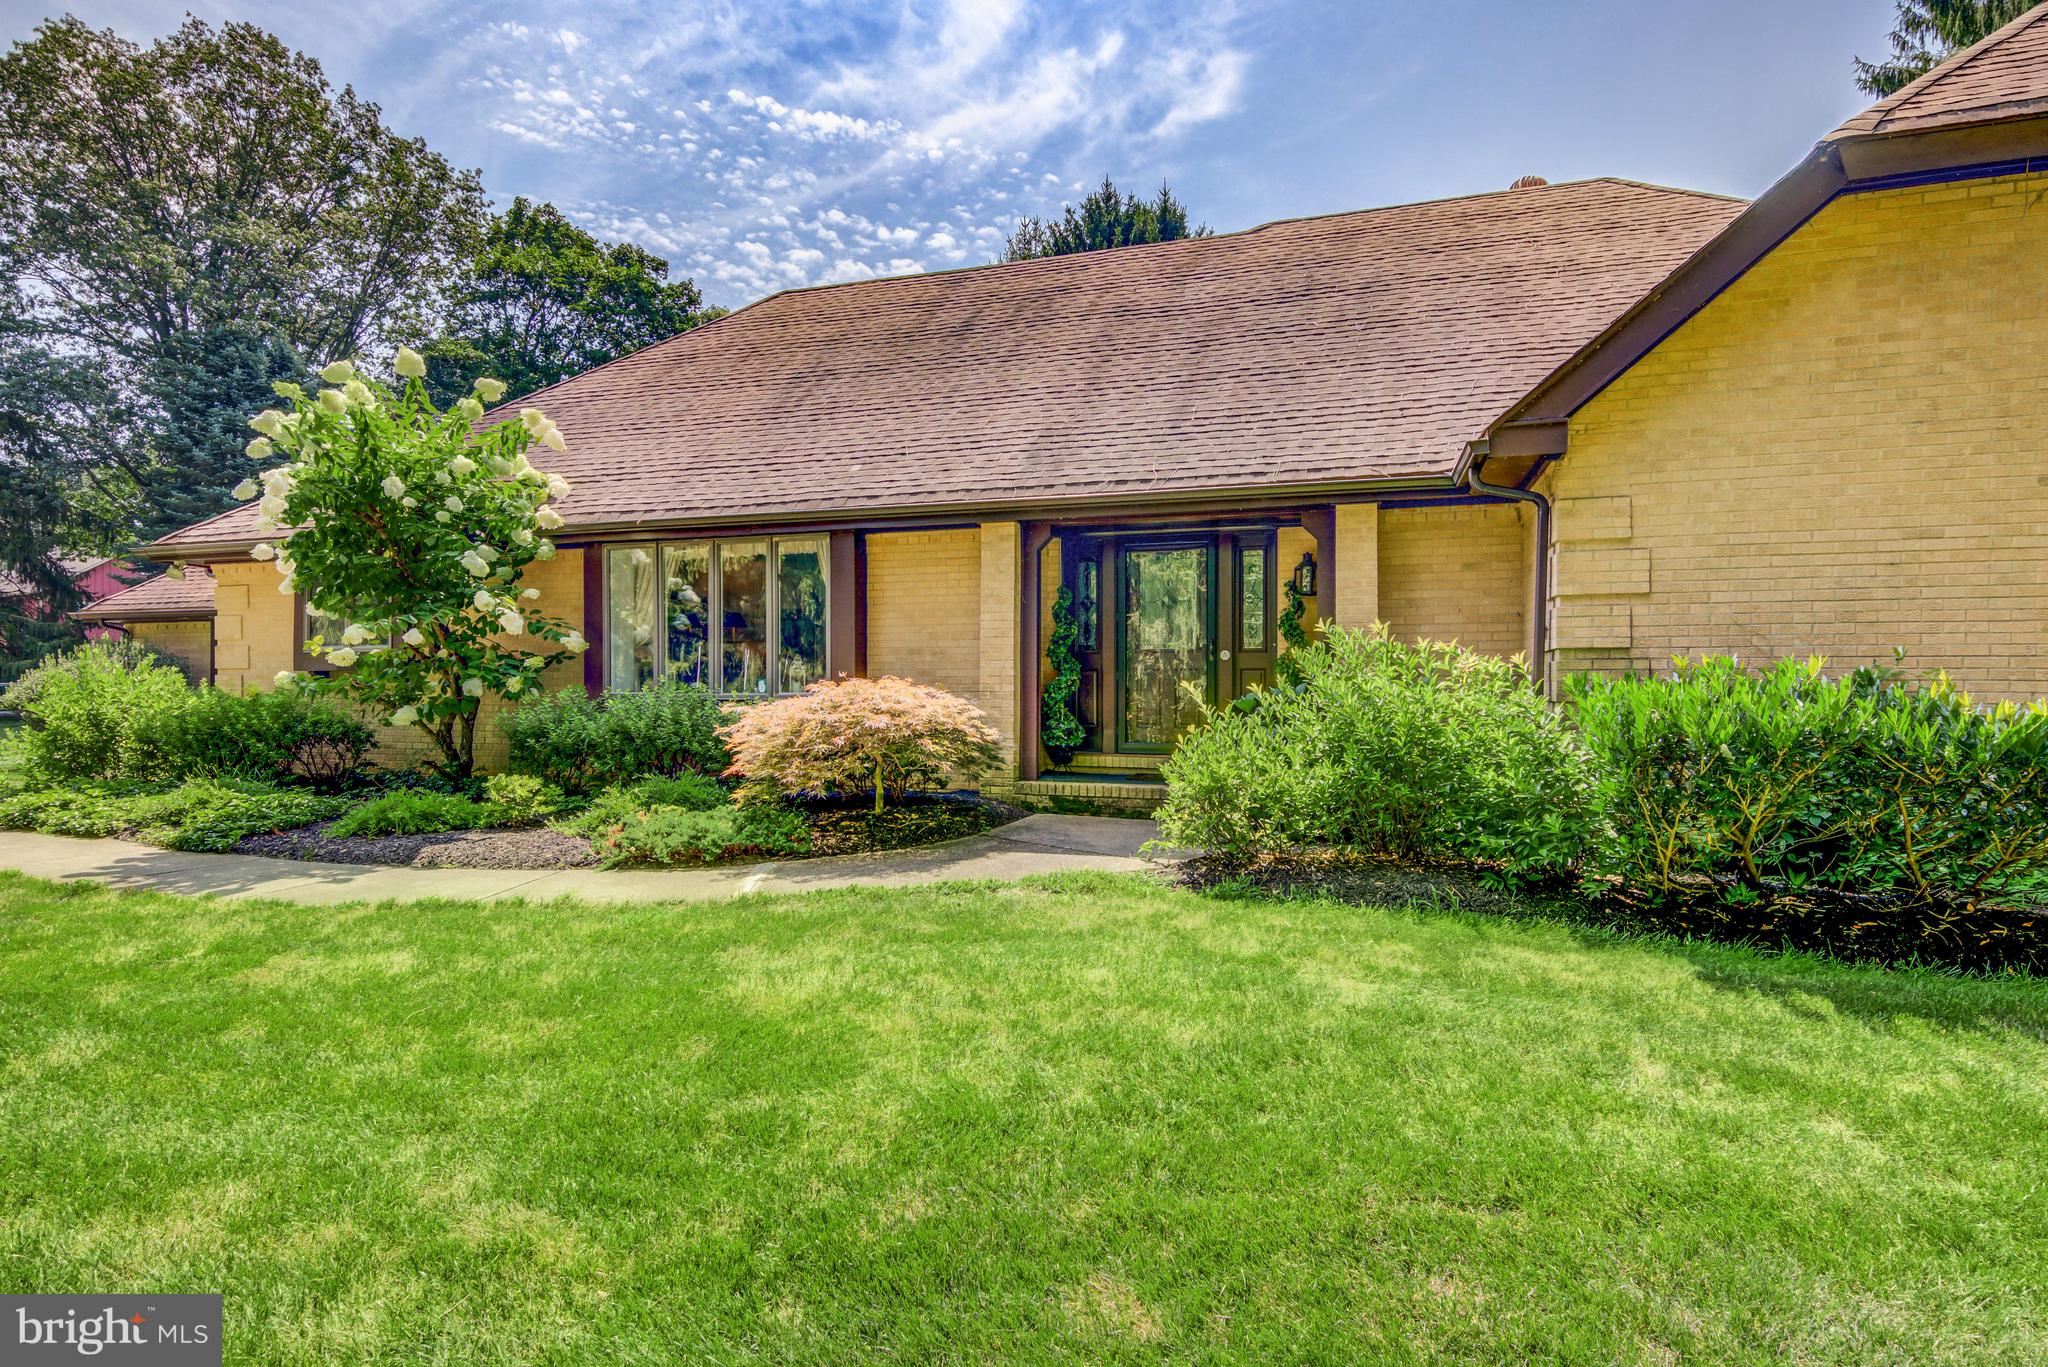 2101 HICKORY HILL ROAD, CHADDS FORD, PA 19317